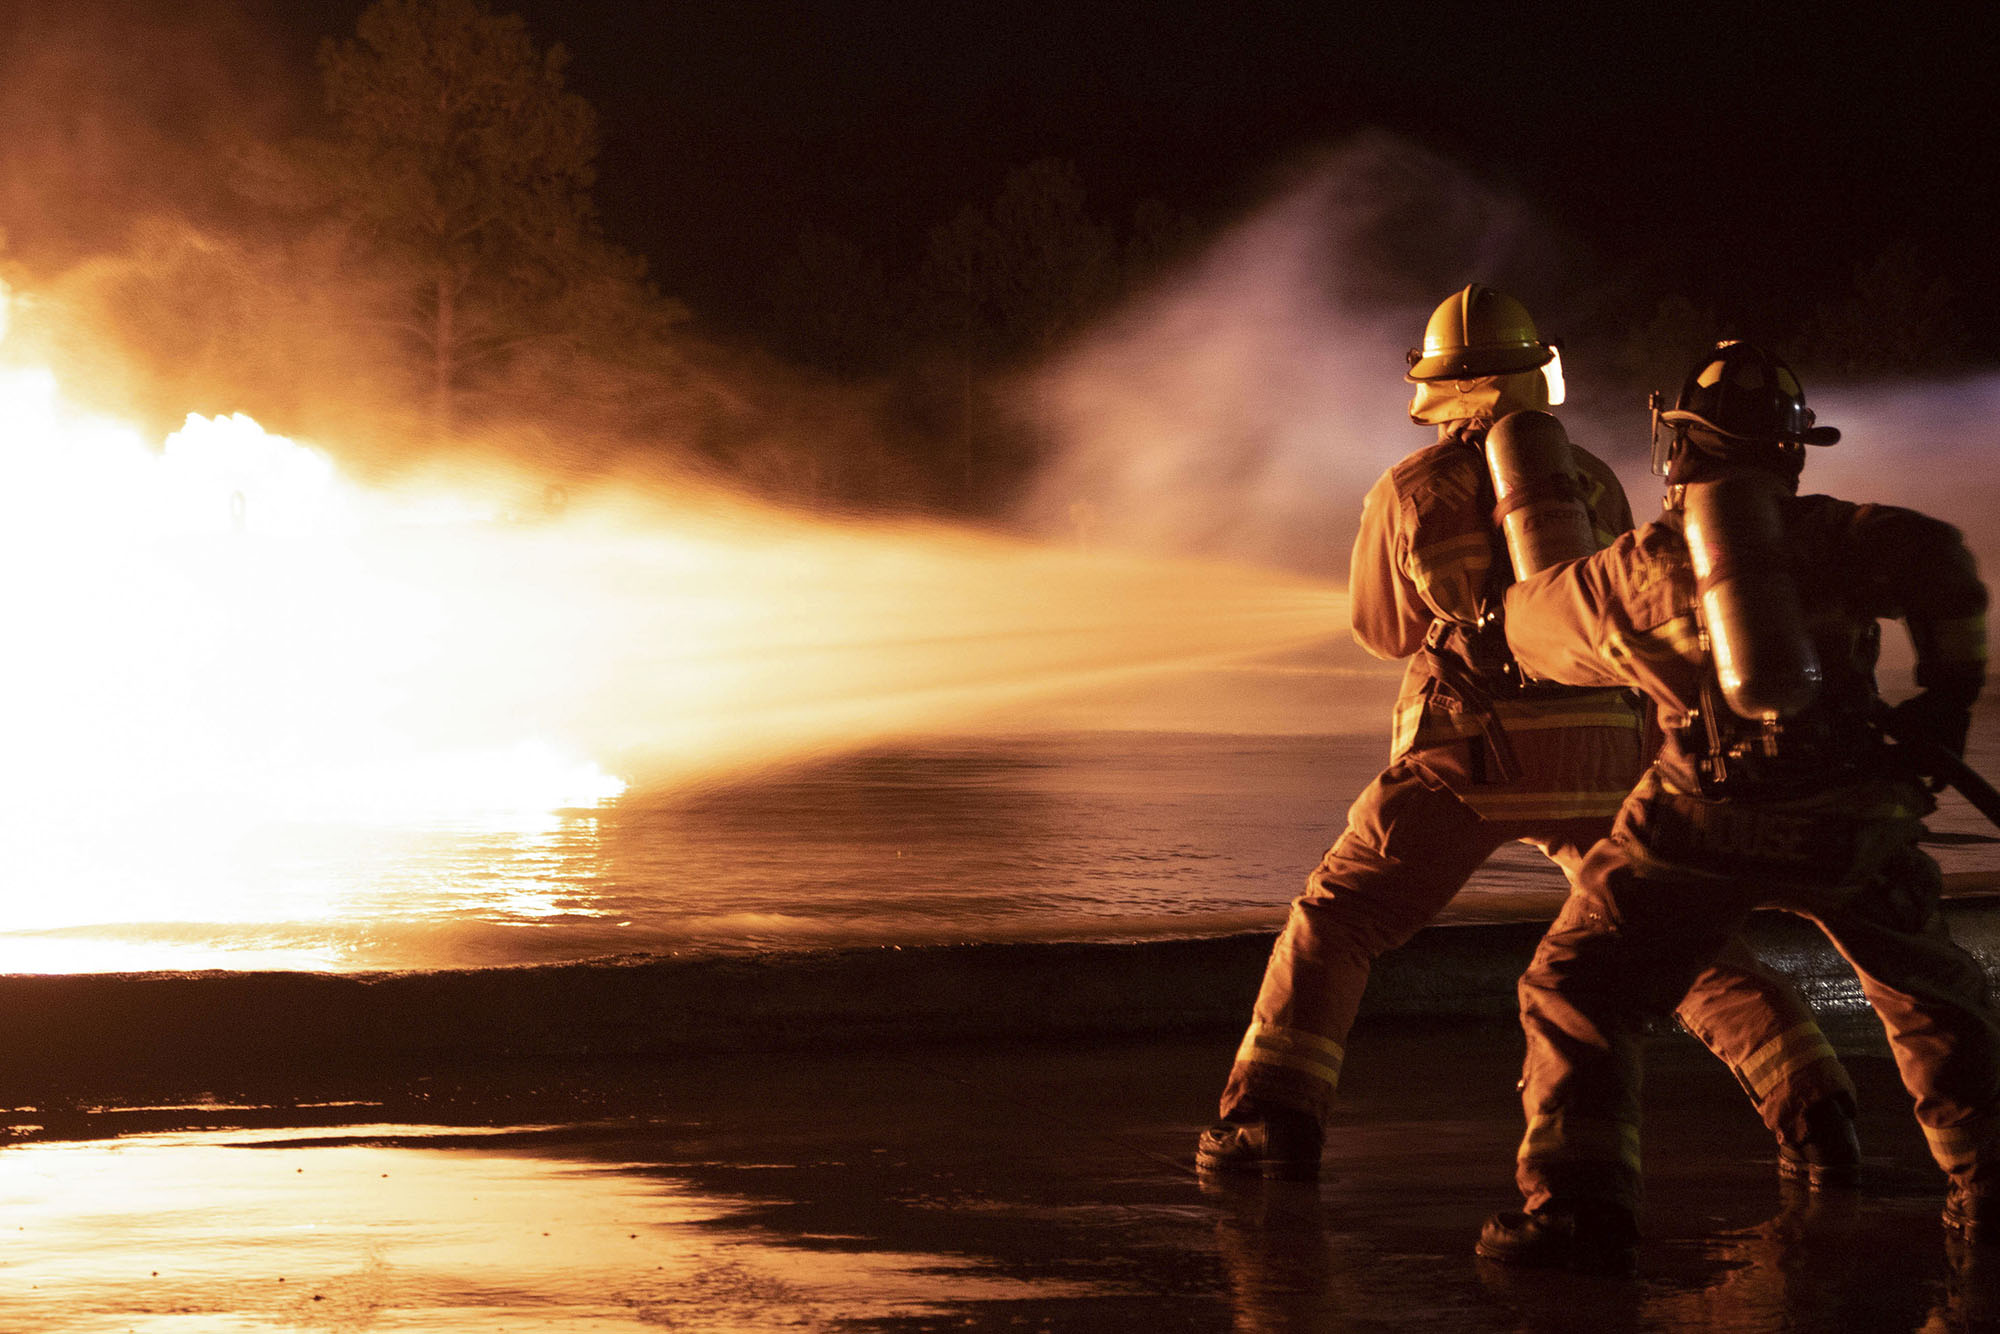 Marine Corps aircraft rescue and firefighting specialists with Headquarters and Headquarters Squadron and Marine Wing Support Squadron 271, conduct live fuel fire burn training on Marine Corps Air Station Cherry Point, N.C., Feb. 3, 2021. (Lance Cpl. Symira Bostic/Marine Corps)